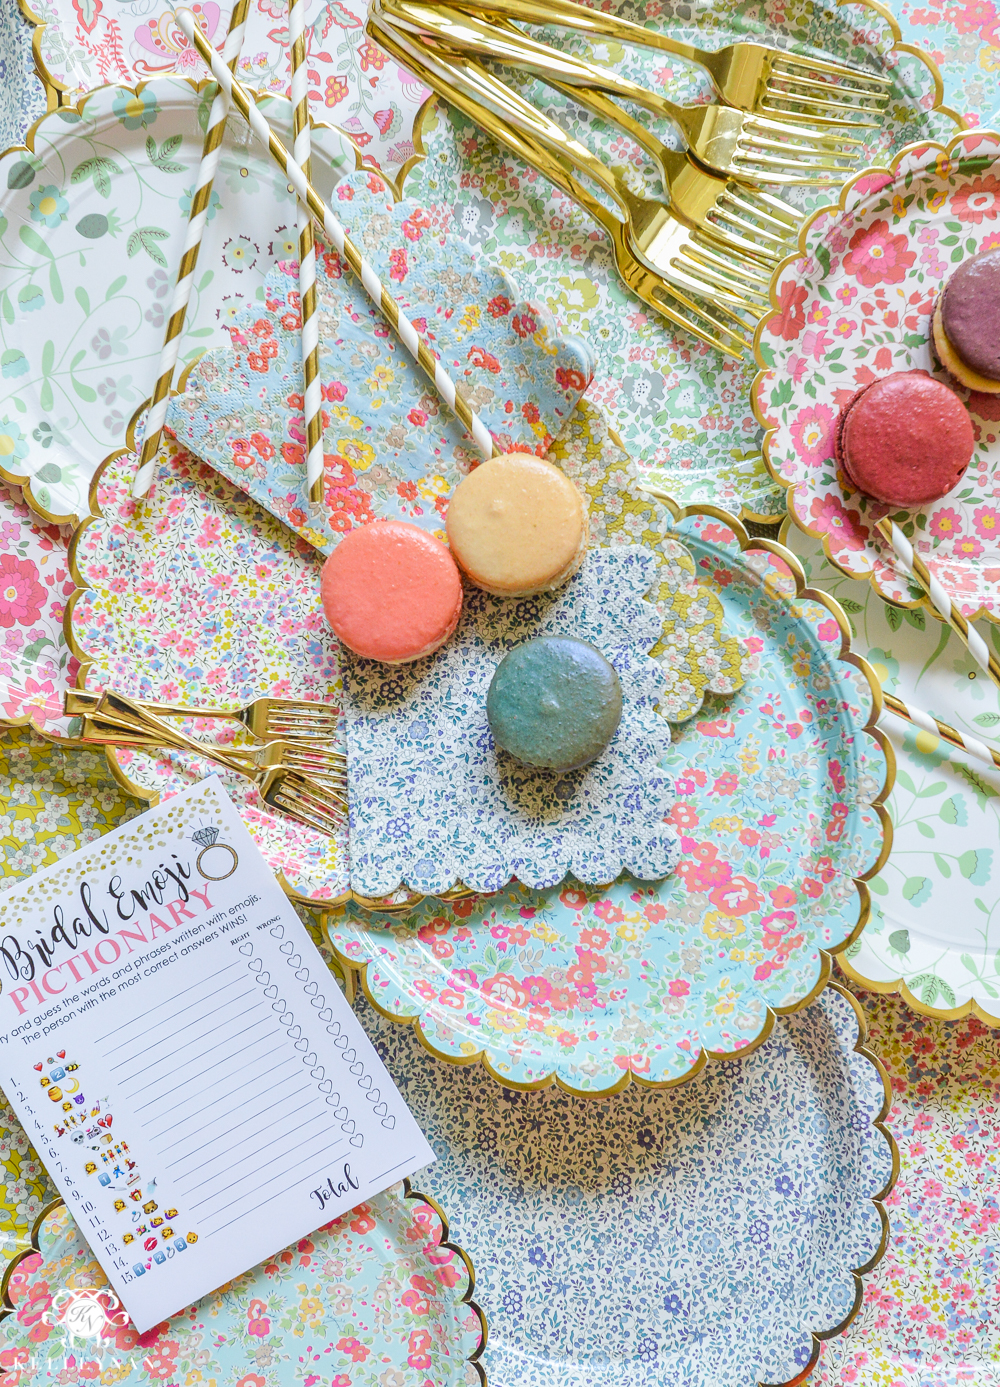 Bridal Shower Fl Plates Macarons And Gold Flatware Ideas For A Garden Party